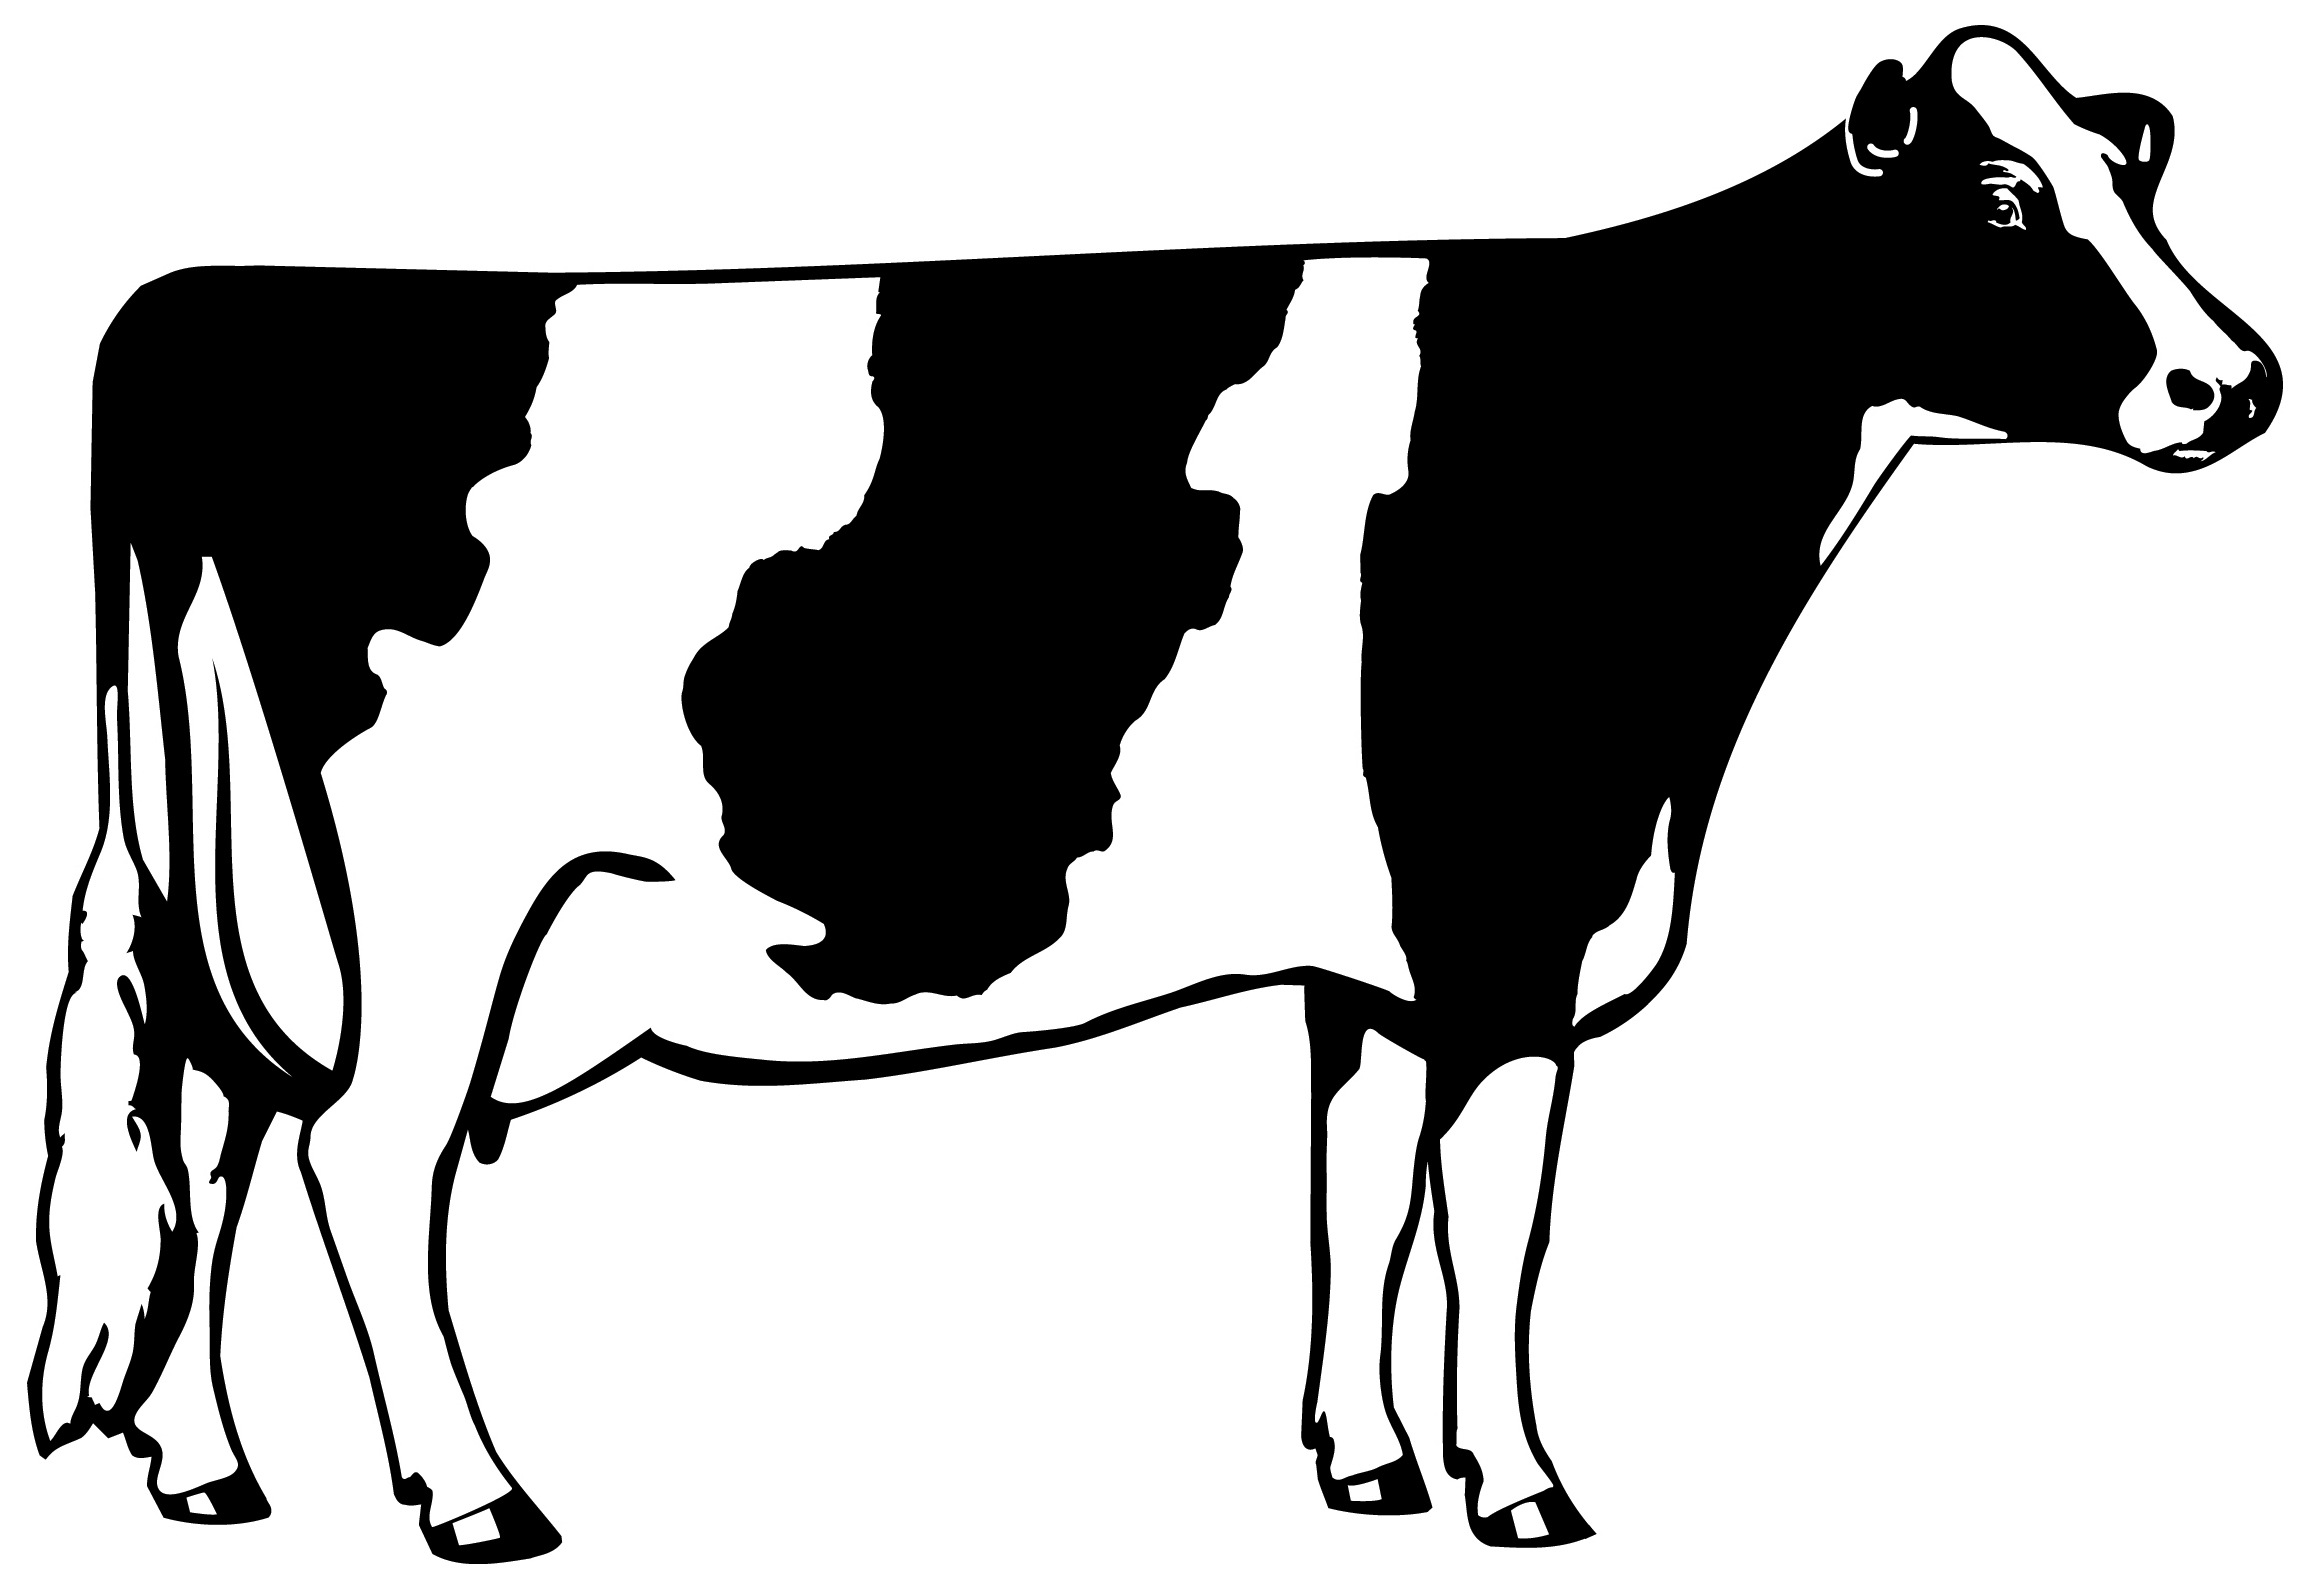 cows silhouette at getdrawings com free for personal use cows rh getdrawings com cattle clipart castle clip art zip